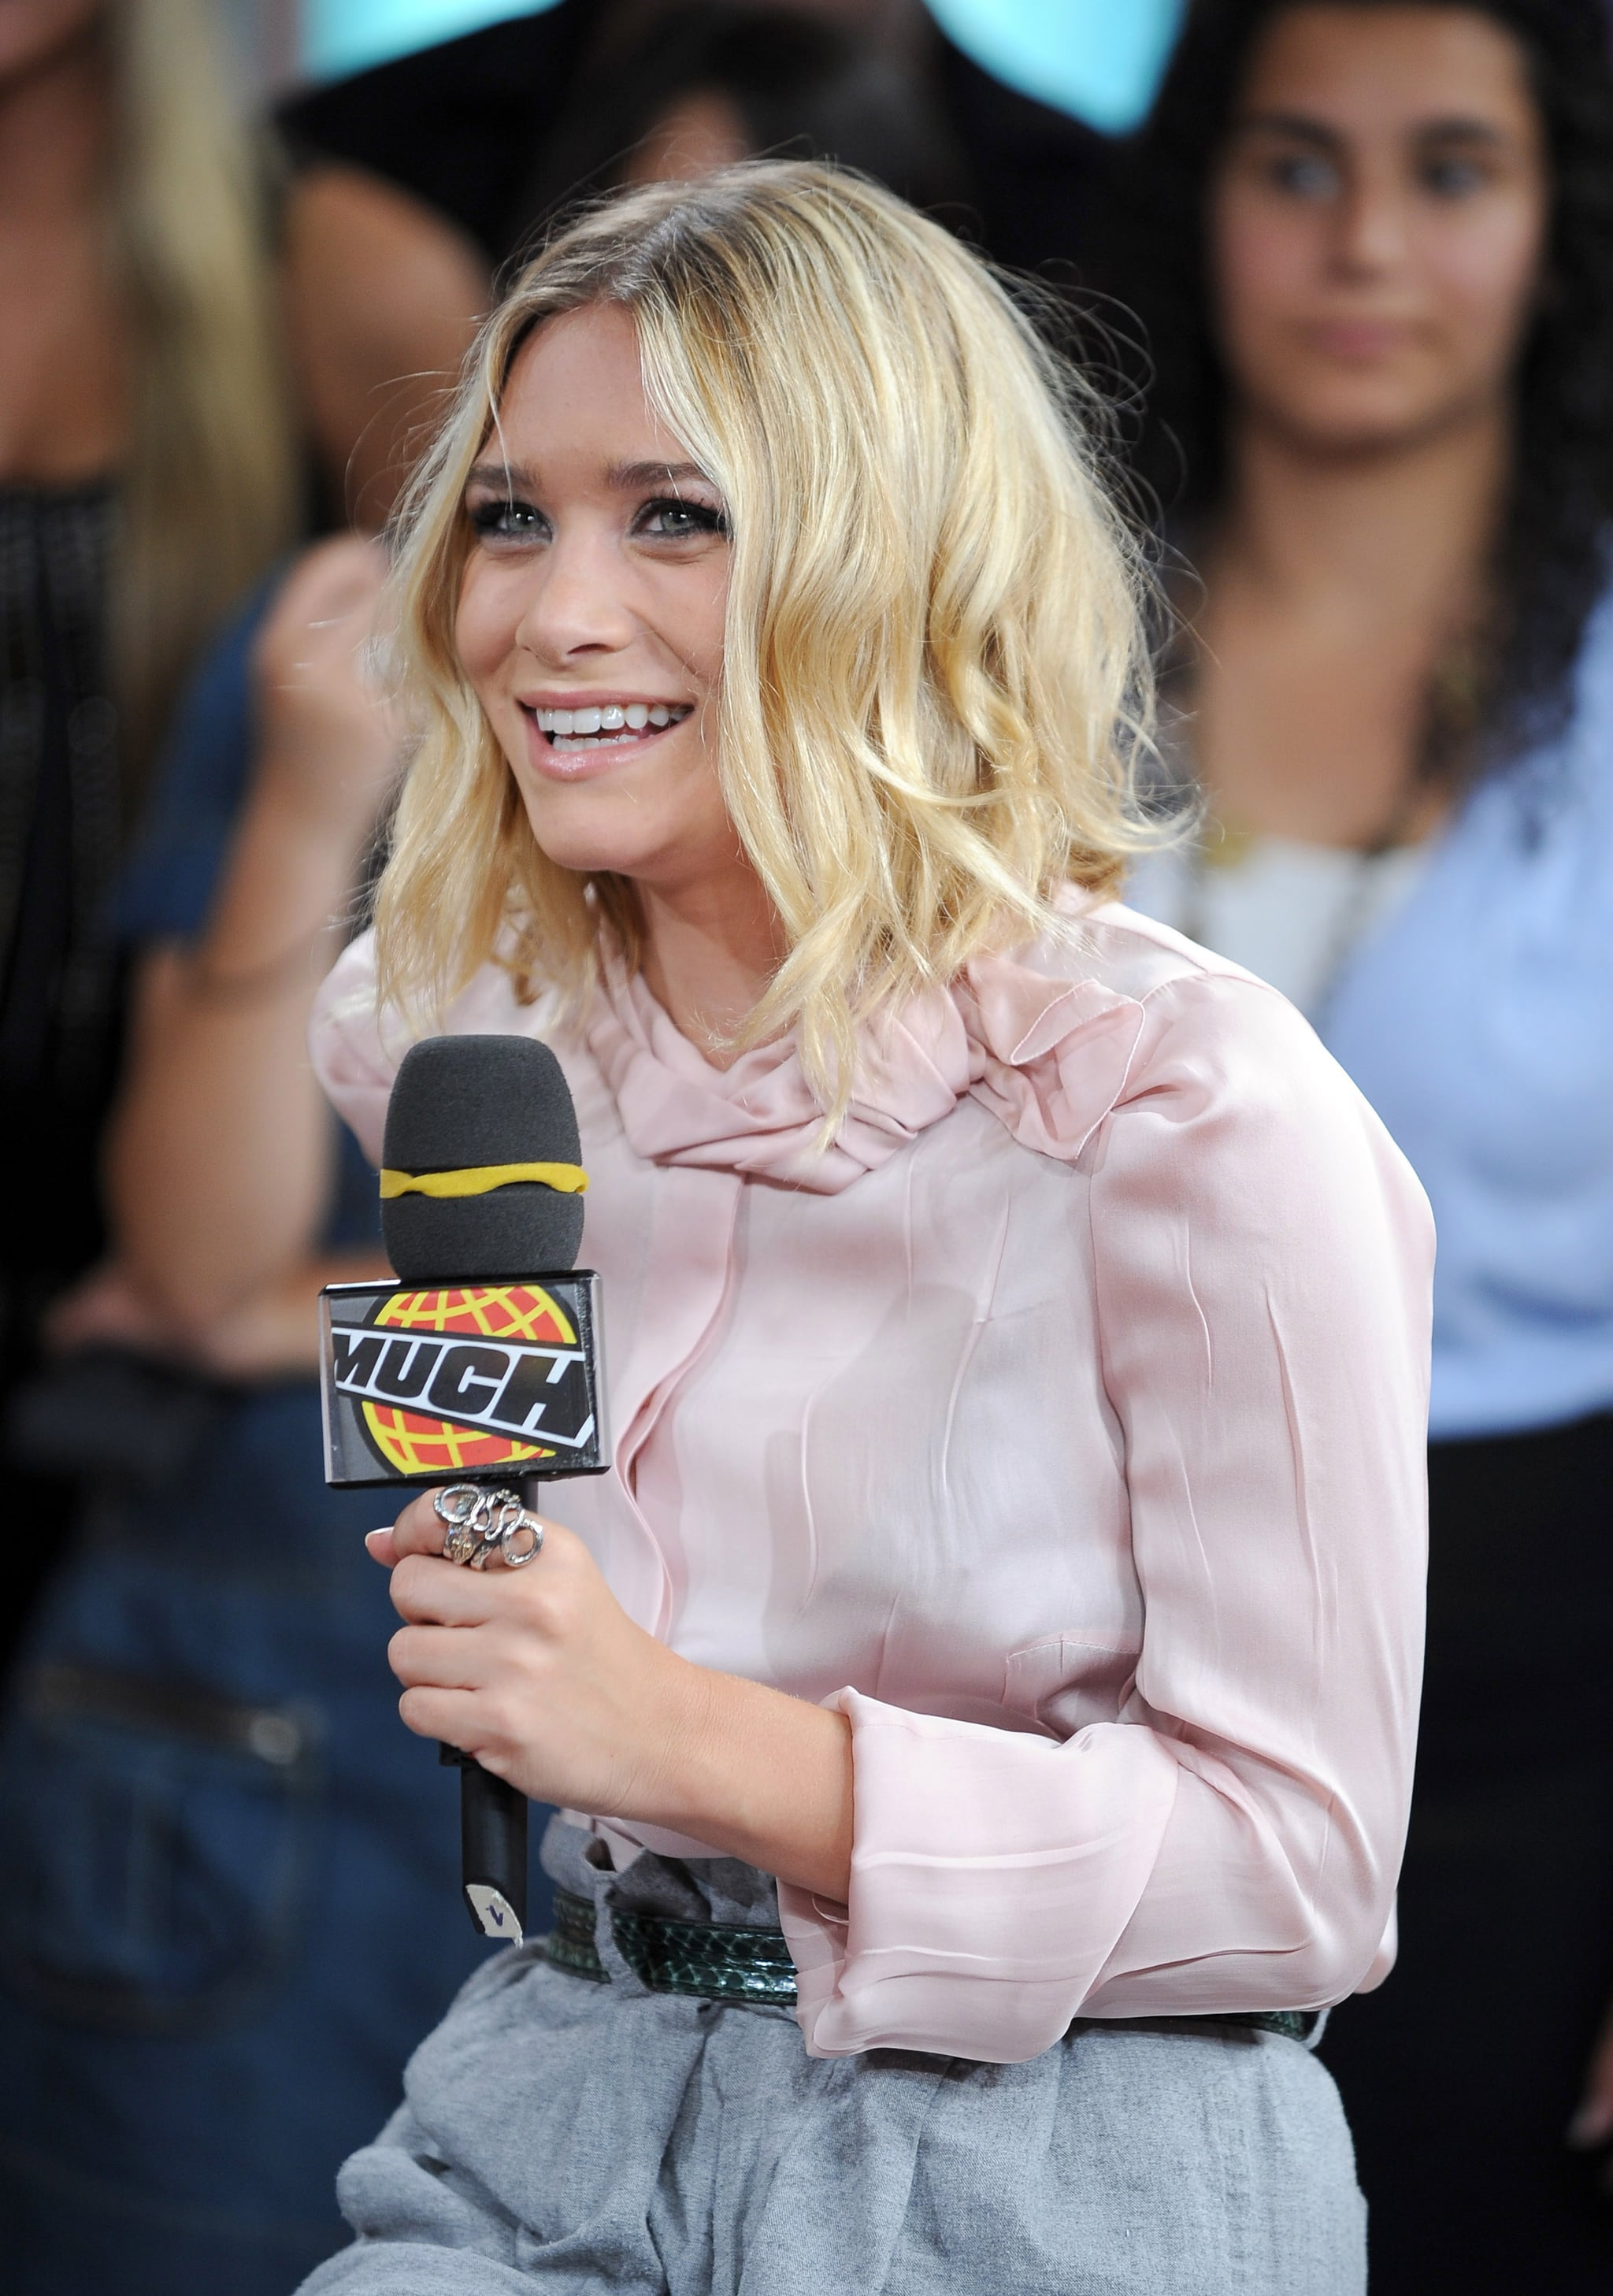 Photos Of Mary Kate Olsen And Ashley Olsen Promoting